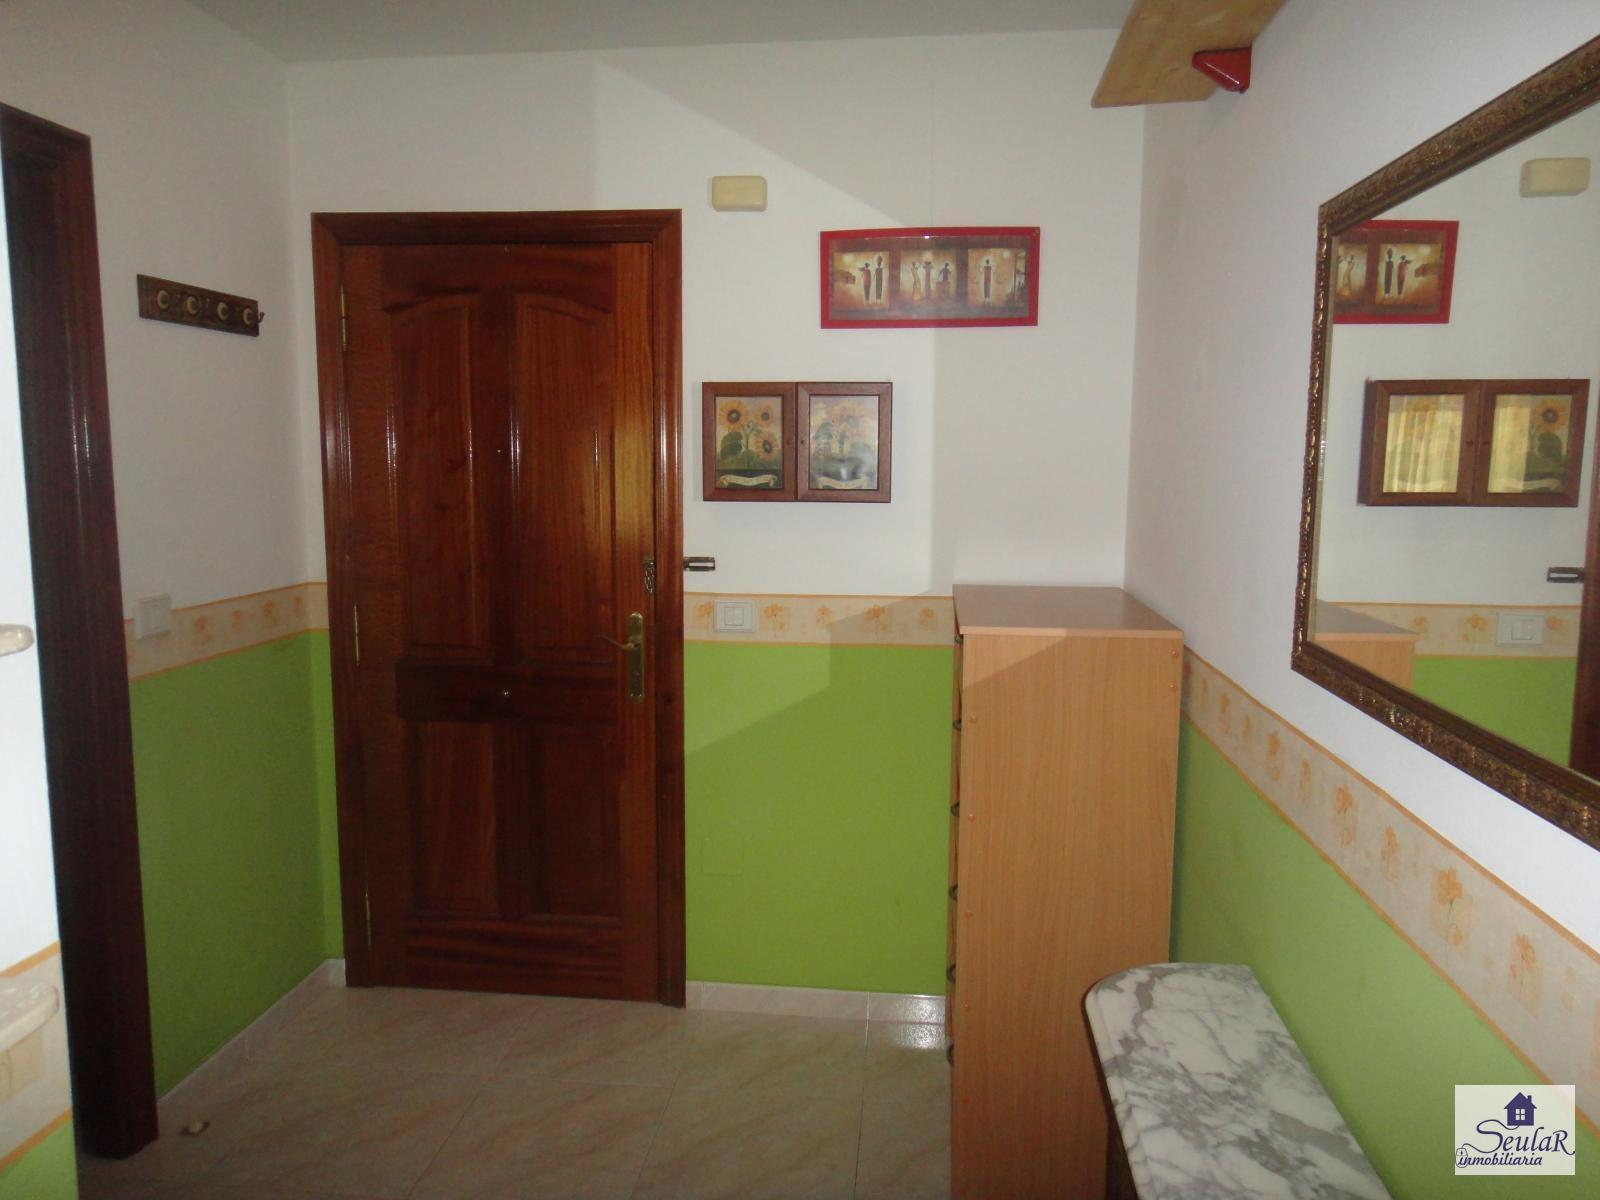 Flat for sale in Rois, 49.900 €